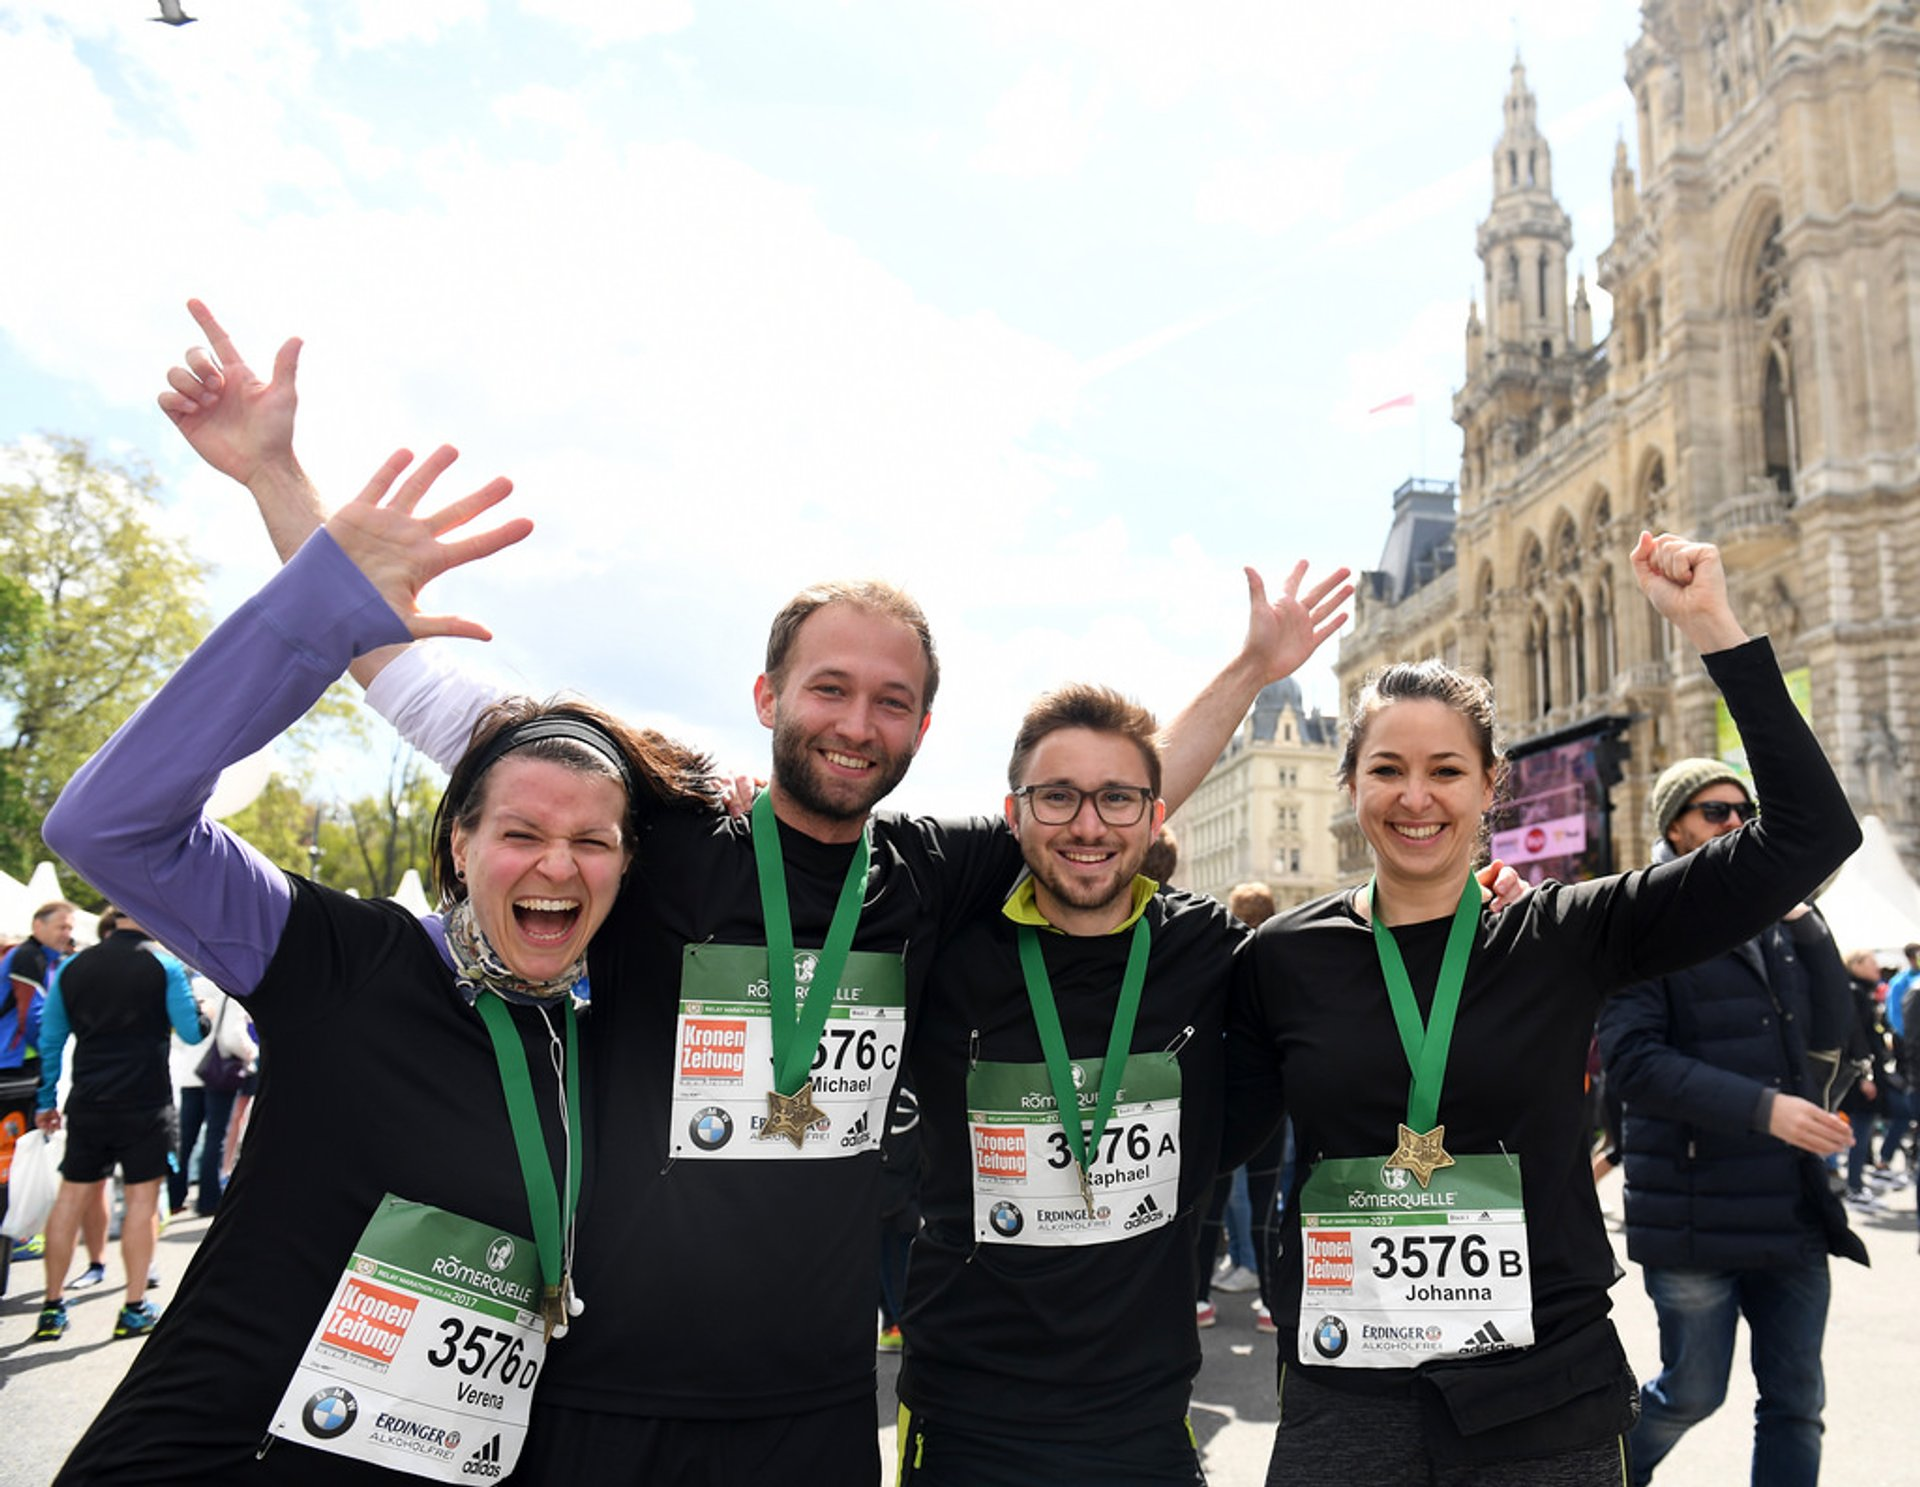 Best time for Vienna City Marathon in Vienna 2019